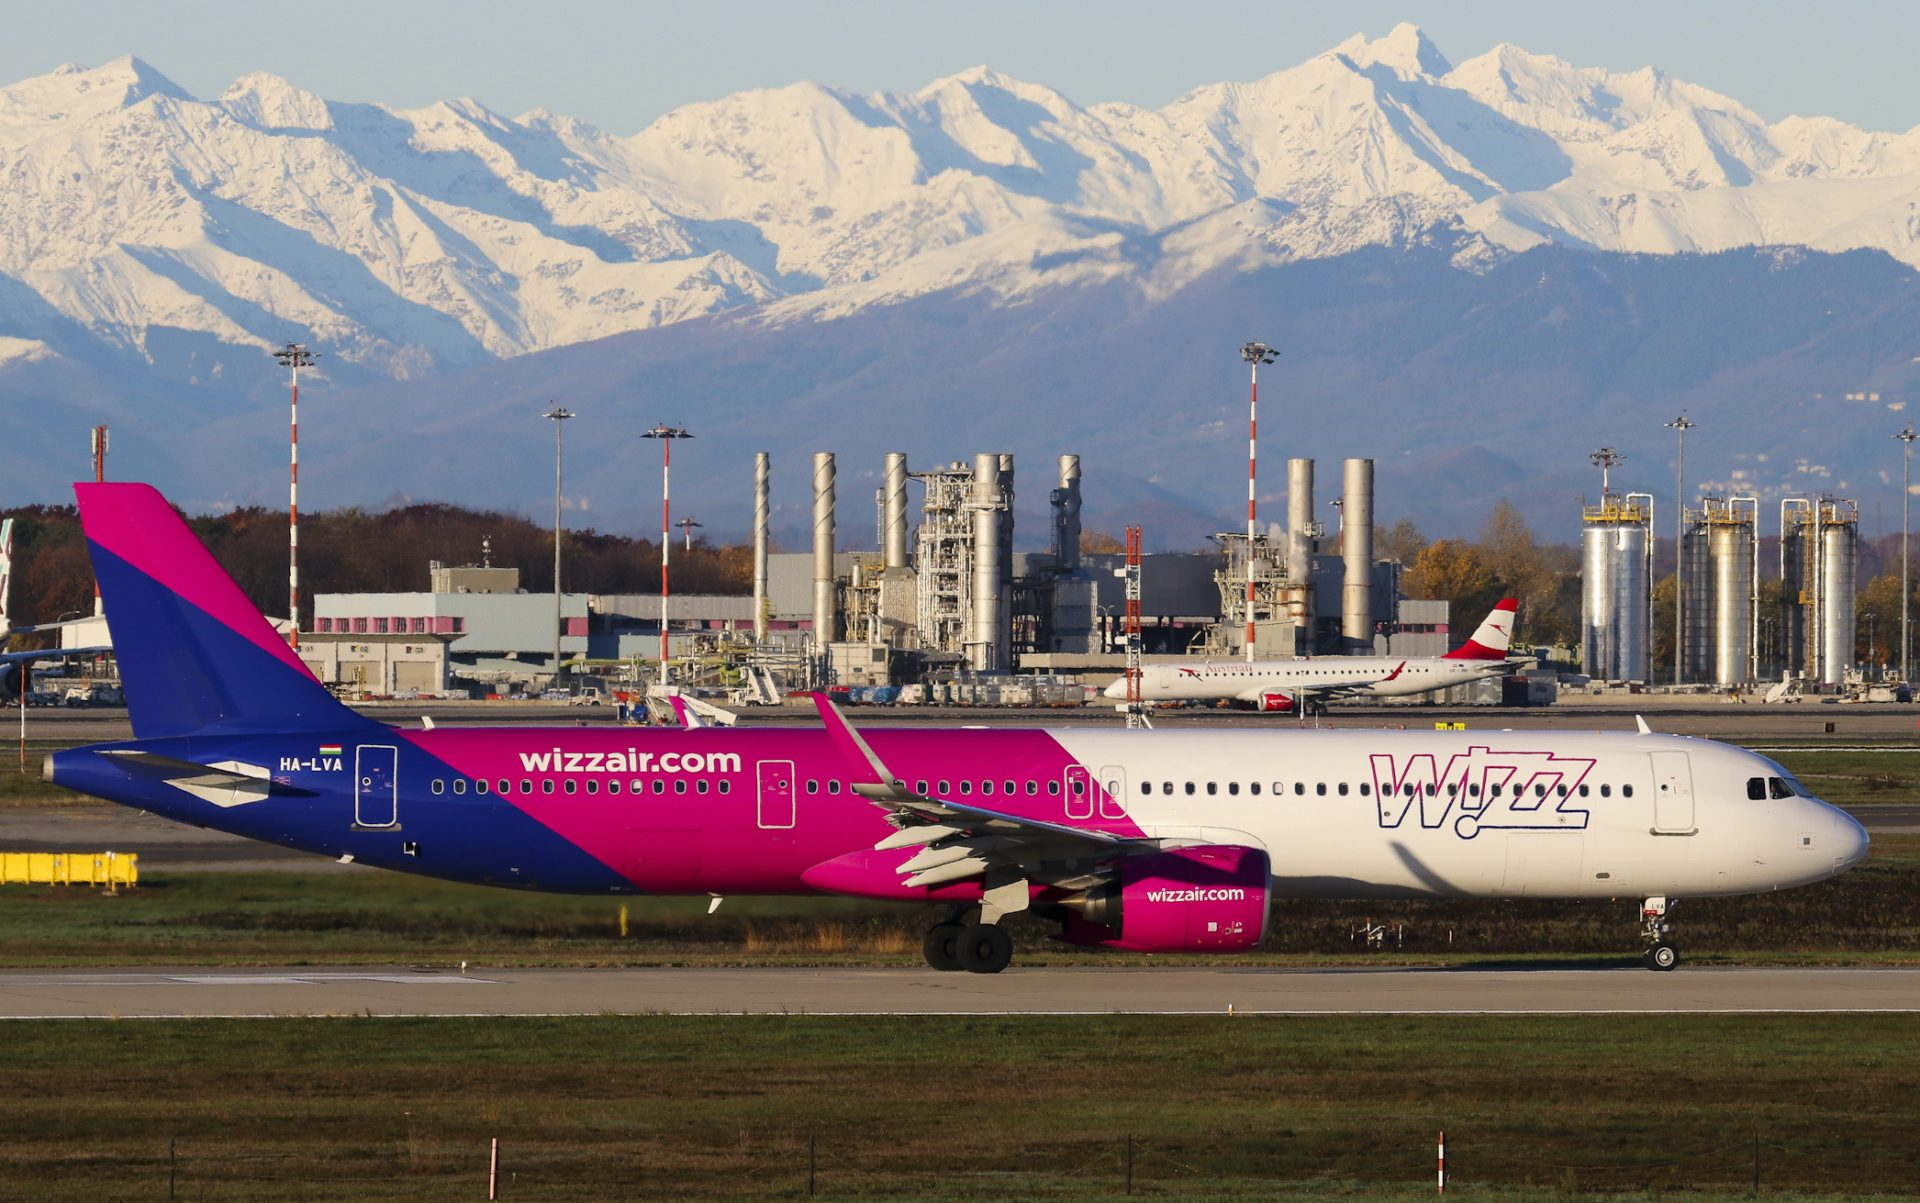 How Wizz Air S Attainment Of Easa Safety Certification Shapes The Airline Group S Brand Airlinegeeks Com